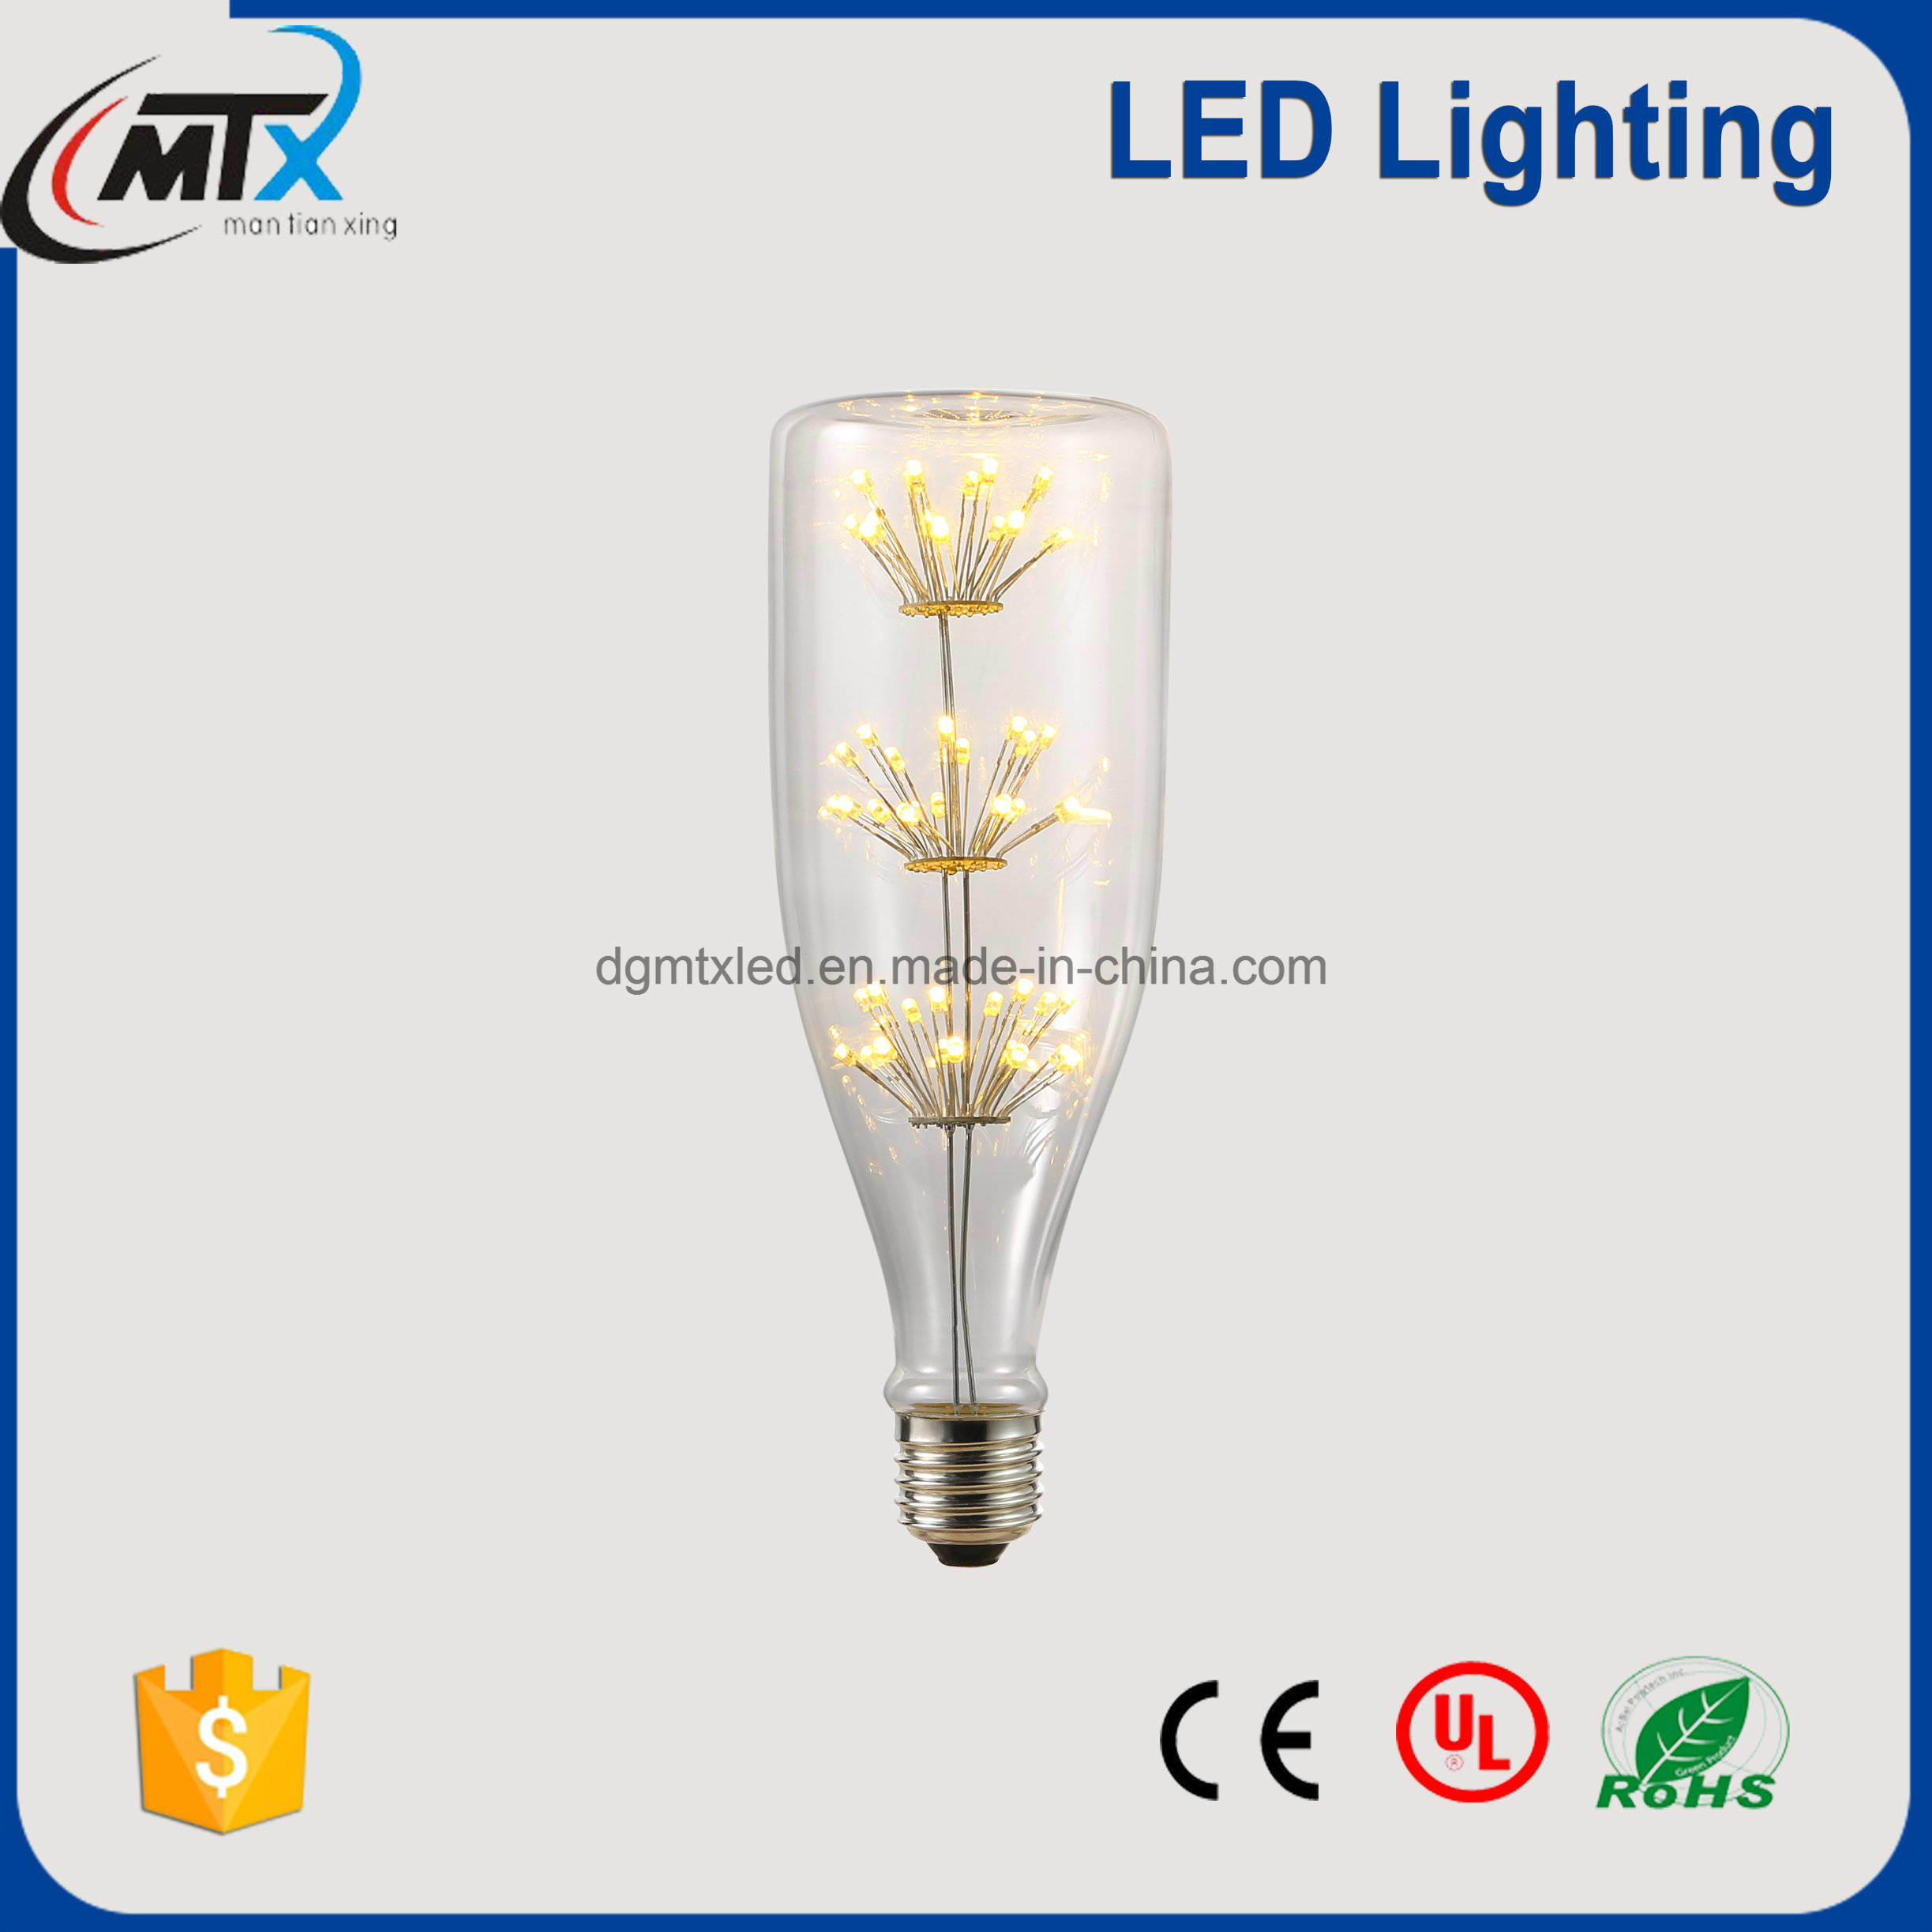 LED rechargeable emergency light bulb 2700K, LED diode 3W bulb